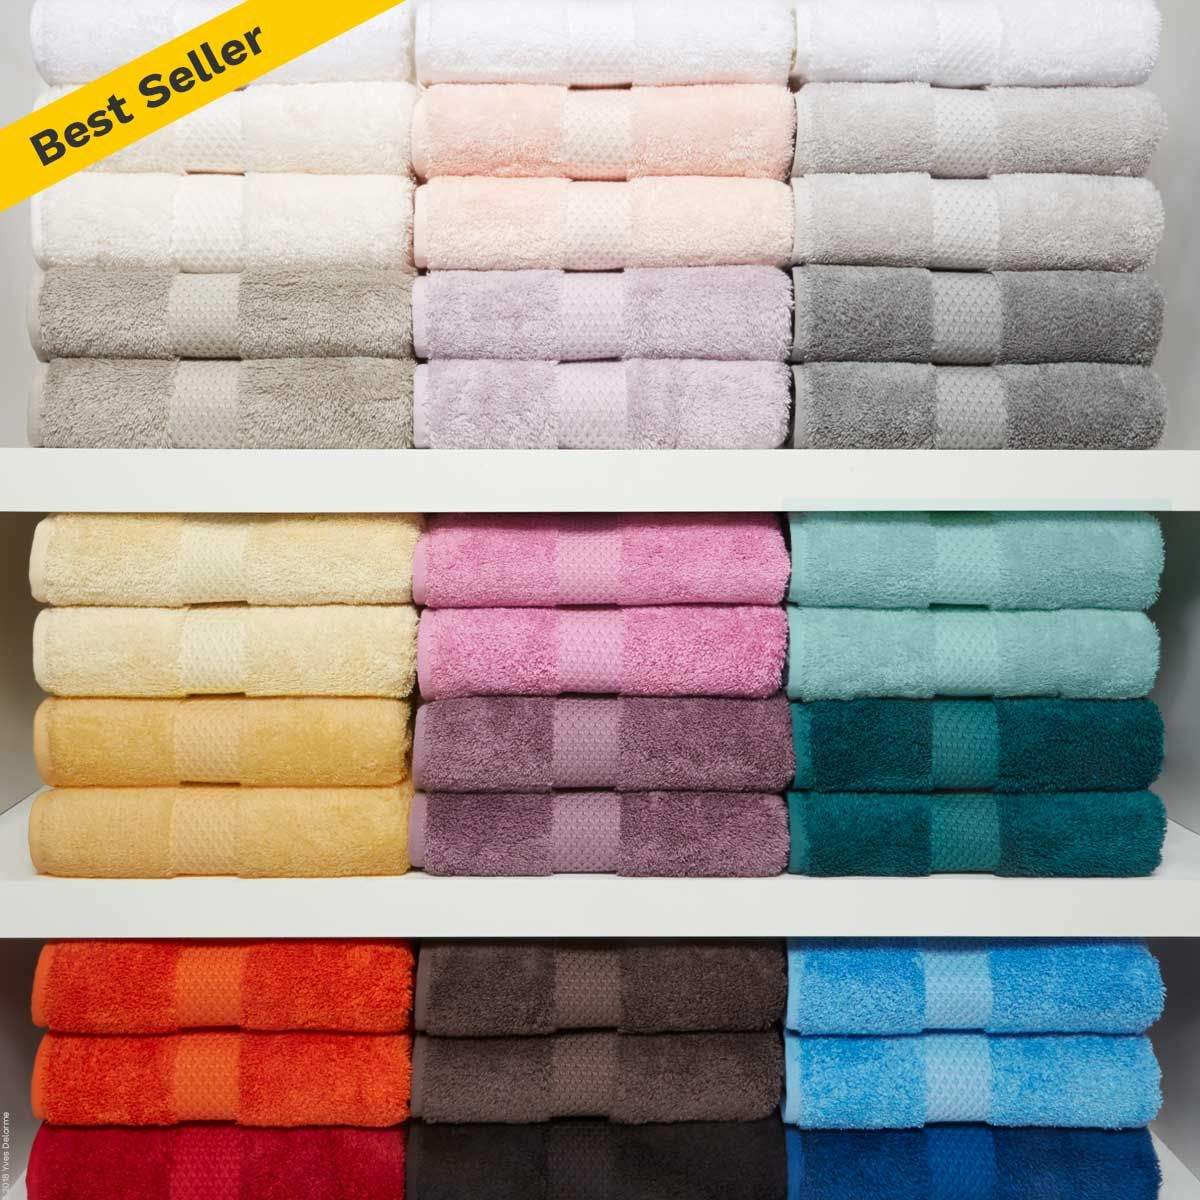 Visit Dewoolfsonlinens Com Etoile Bath Towels These Unbelievably Soft Sumptuous Towels Are Available In 20 Popular Solid Colo Towel Pioneer Linens Bath Towels